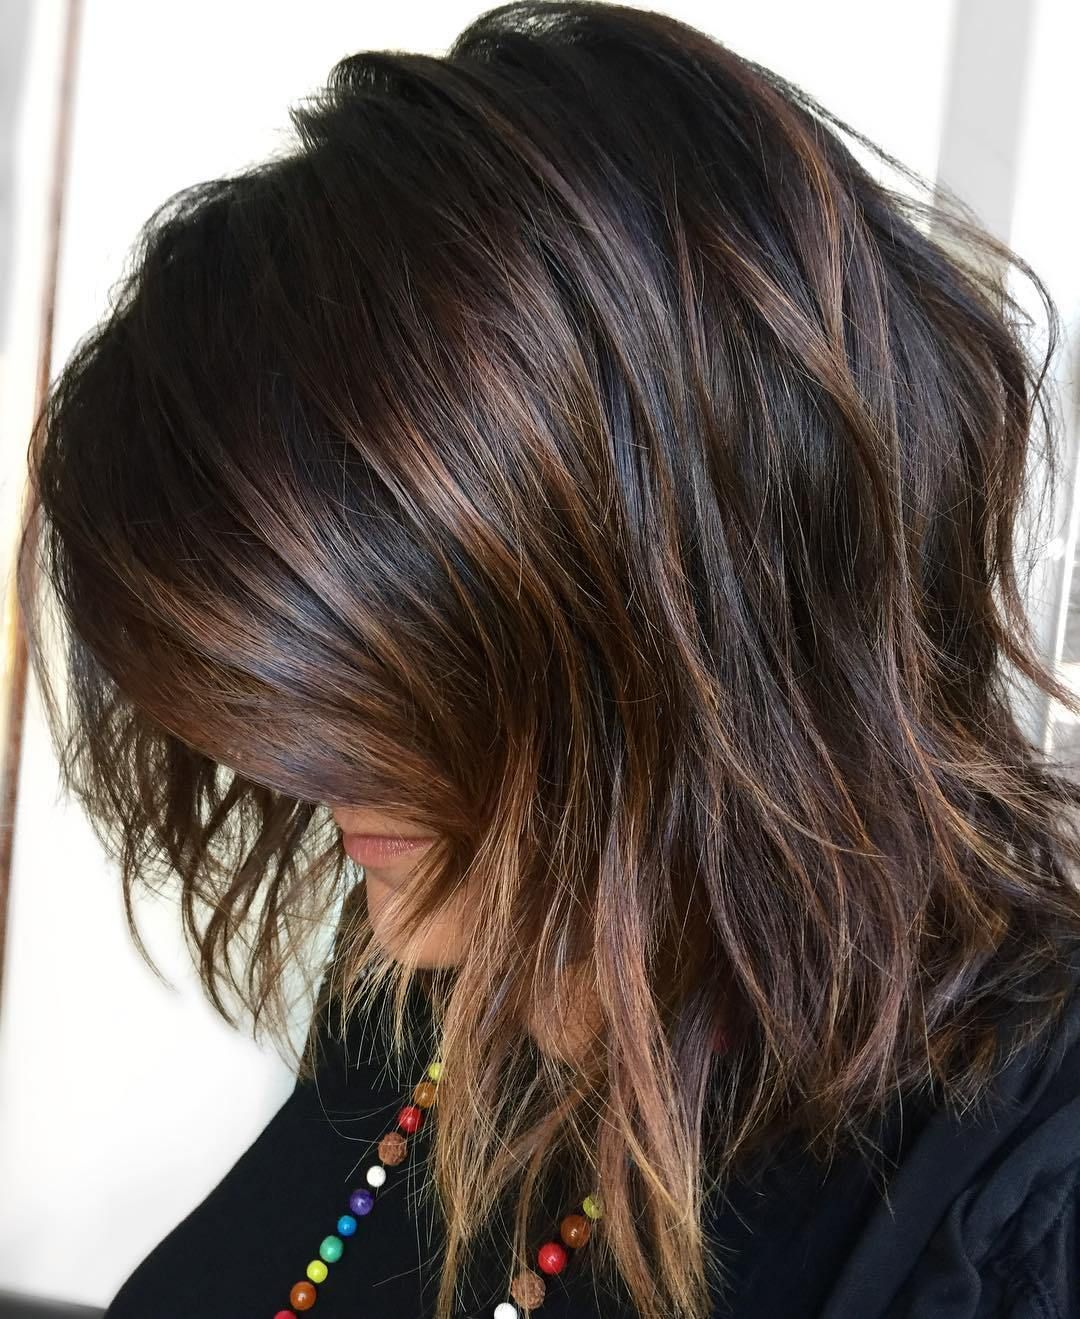 60 Chocolate Brown Hair Color Ideas for Brunettes – Best Hairstyles Haircuts – My Byreid Blog